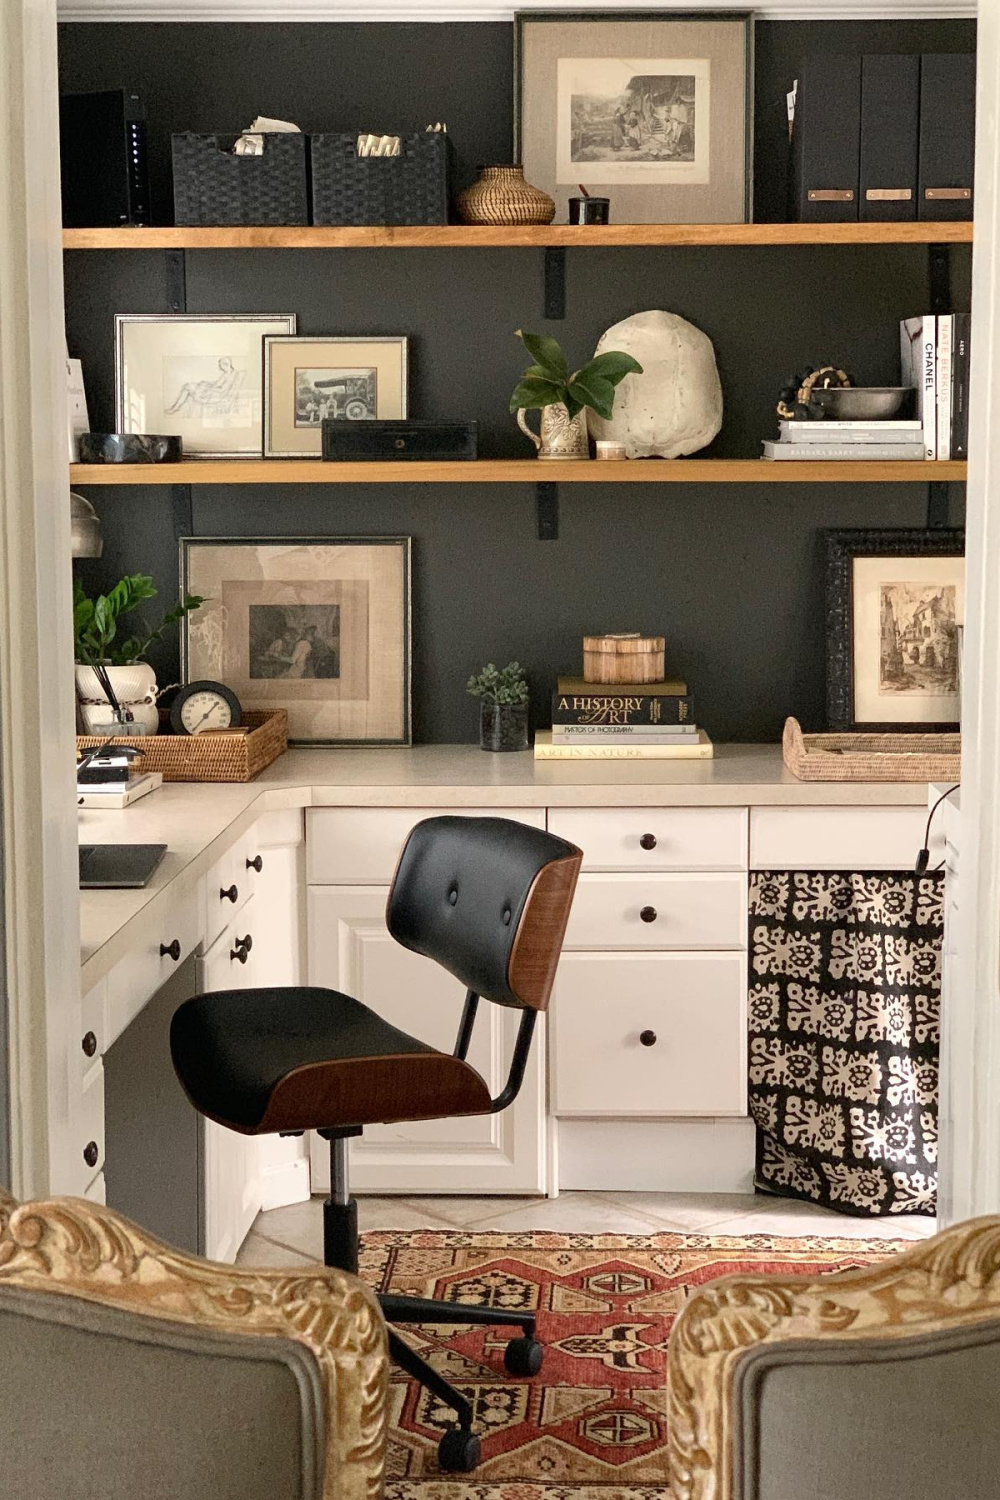 Iron Mountain (Benjamin Moore) paint color on walls in a lovely laundry room office with open shelving and white cabinets - Sherry Hart. #ironmountain #benjaminmooreironmountain #office